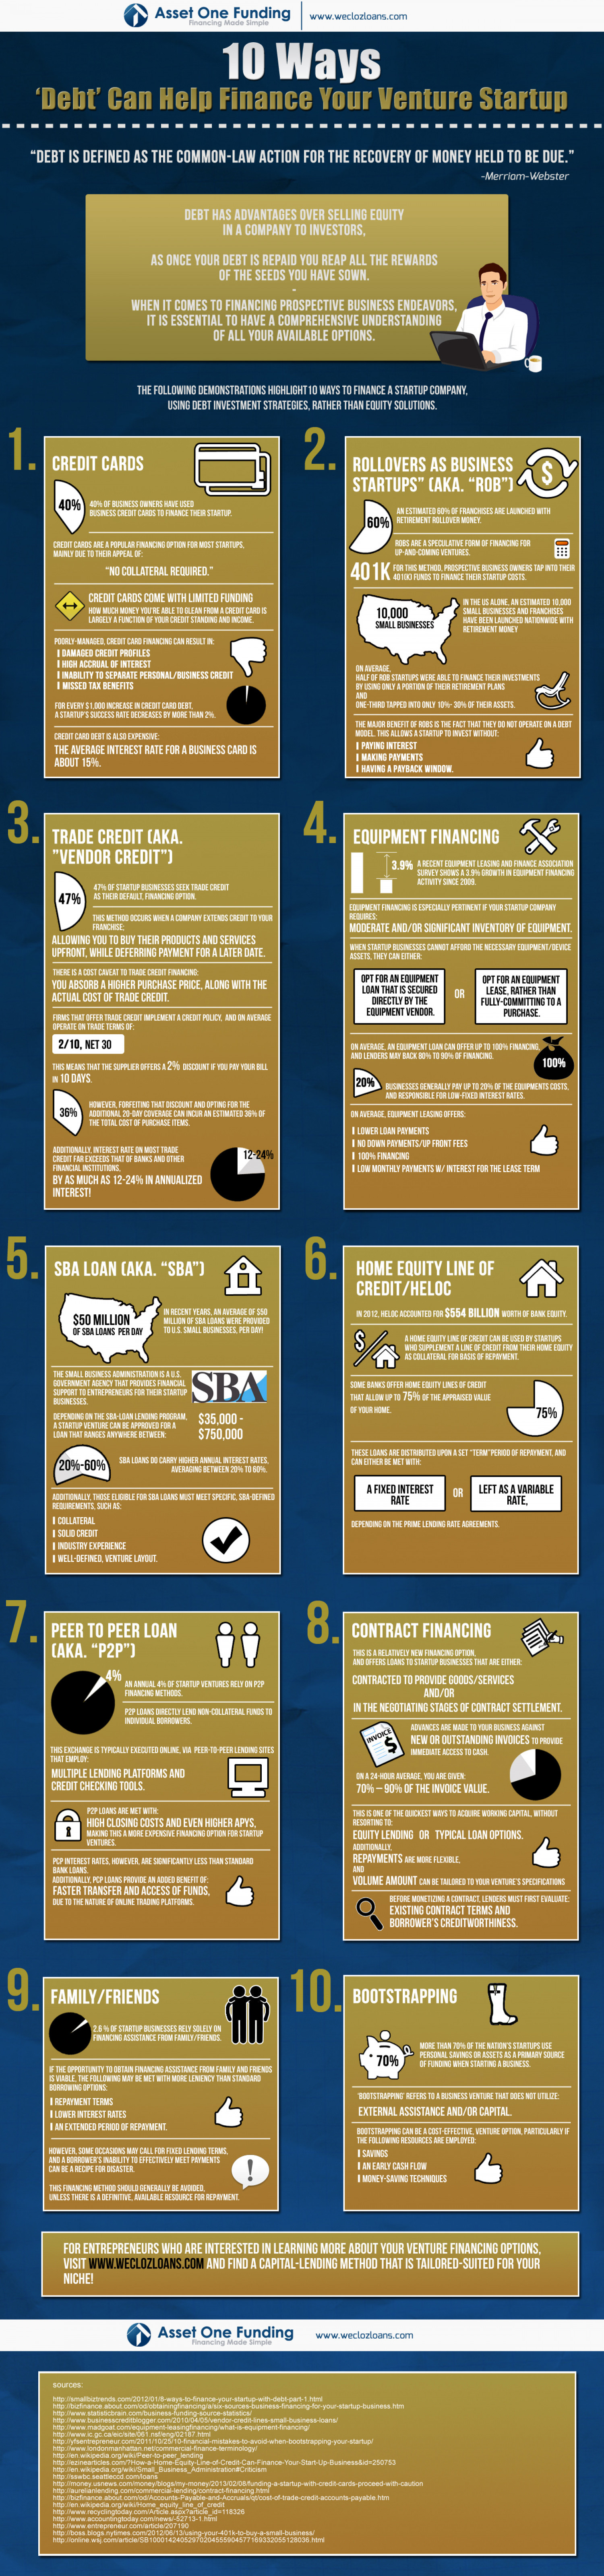 10 Ways -'Debt' Can Help Finance Your Venture Startup Infographic